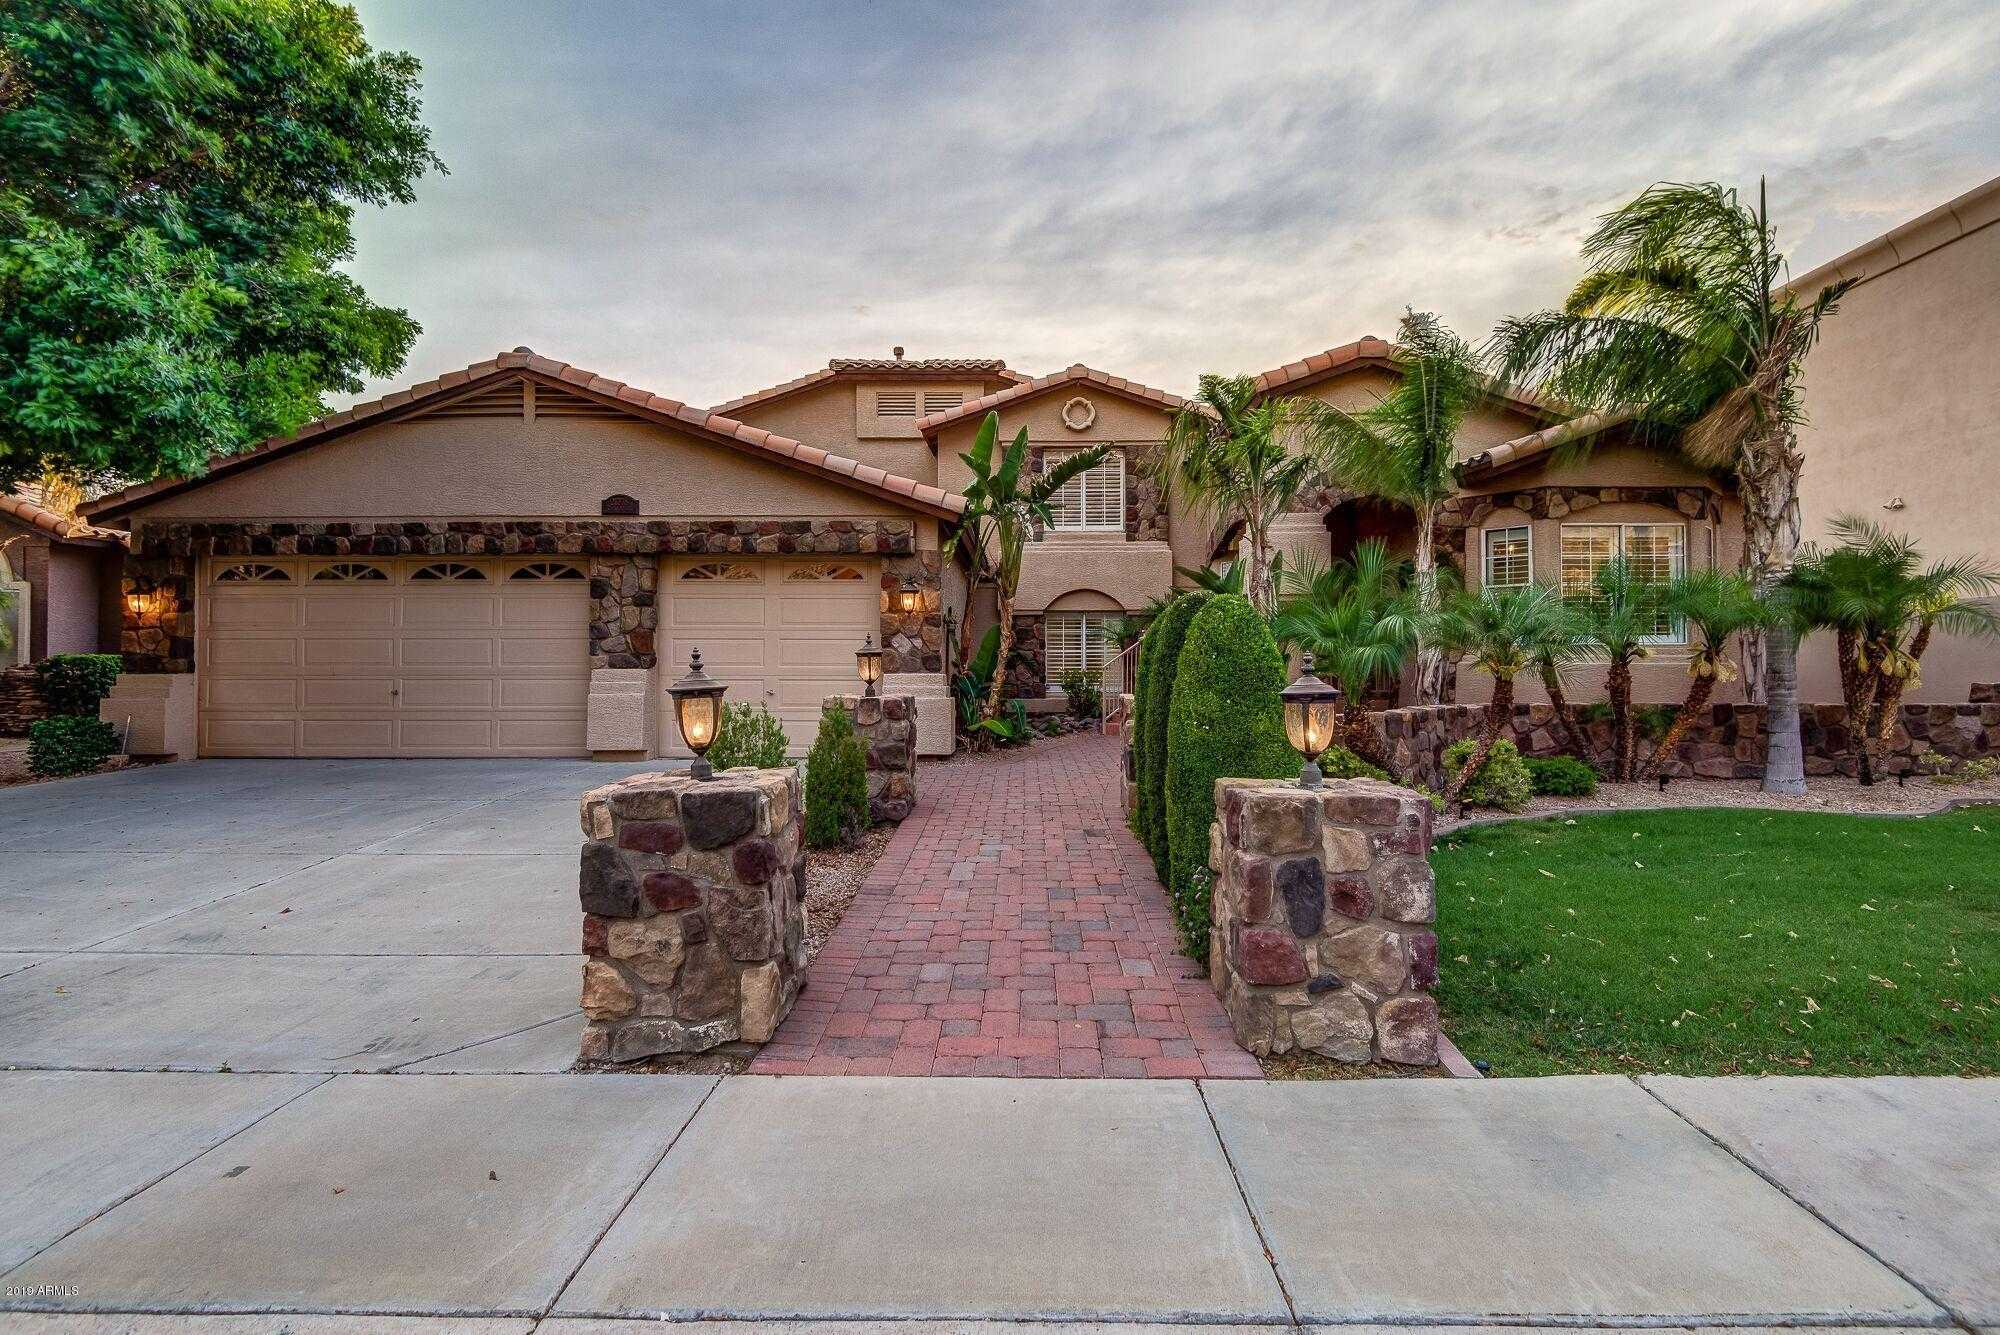 $734,000 - 5Br/3Ba - Home for Sale in Arrowhead Lakes - Estates At Arrowhead Phase One B, Glendale